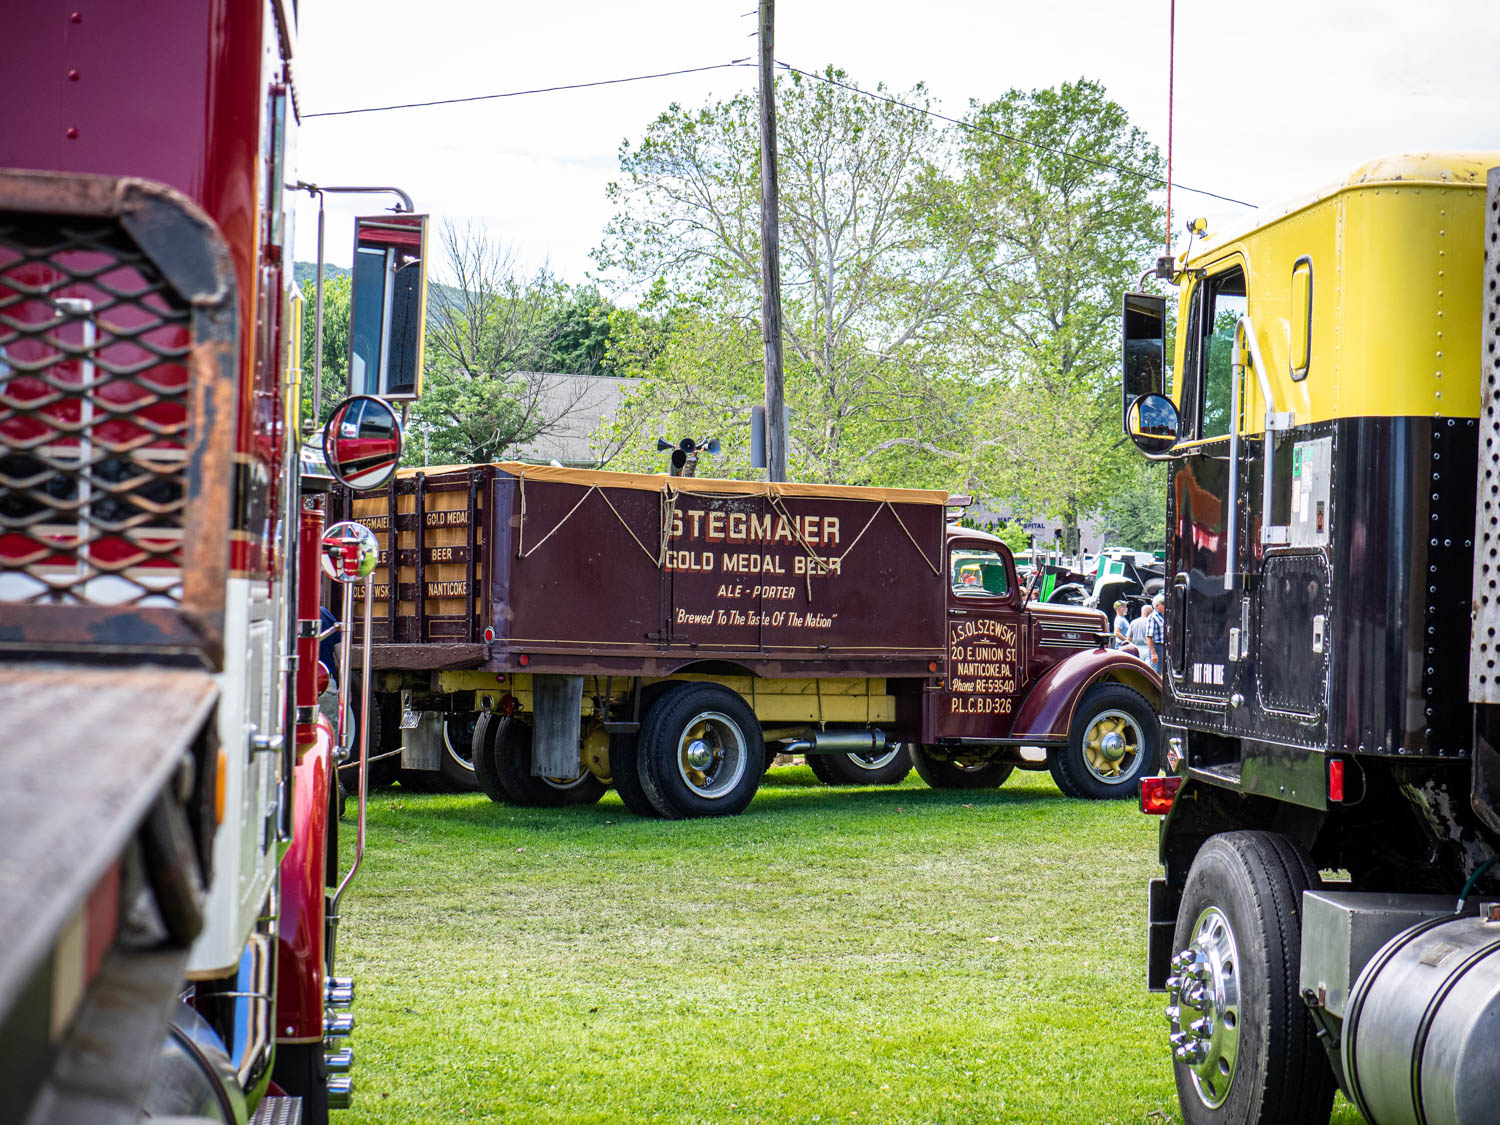 Only one trophy is handed out at the ATCA National Meet: The Director's Award. This year's winner was a 1948 Mack EG, an all-original beer delivery truck still wearing its Stegmaier Beer livery.